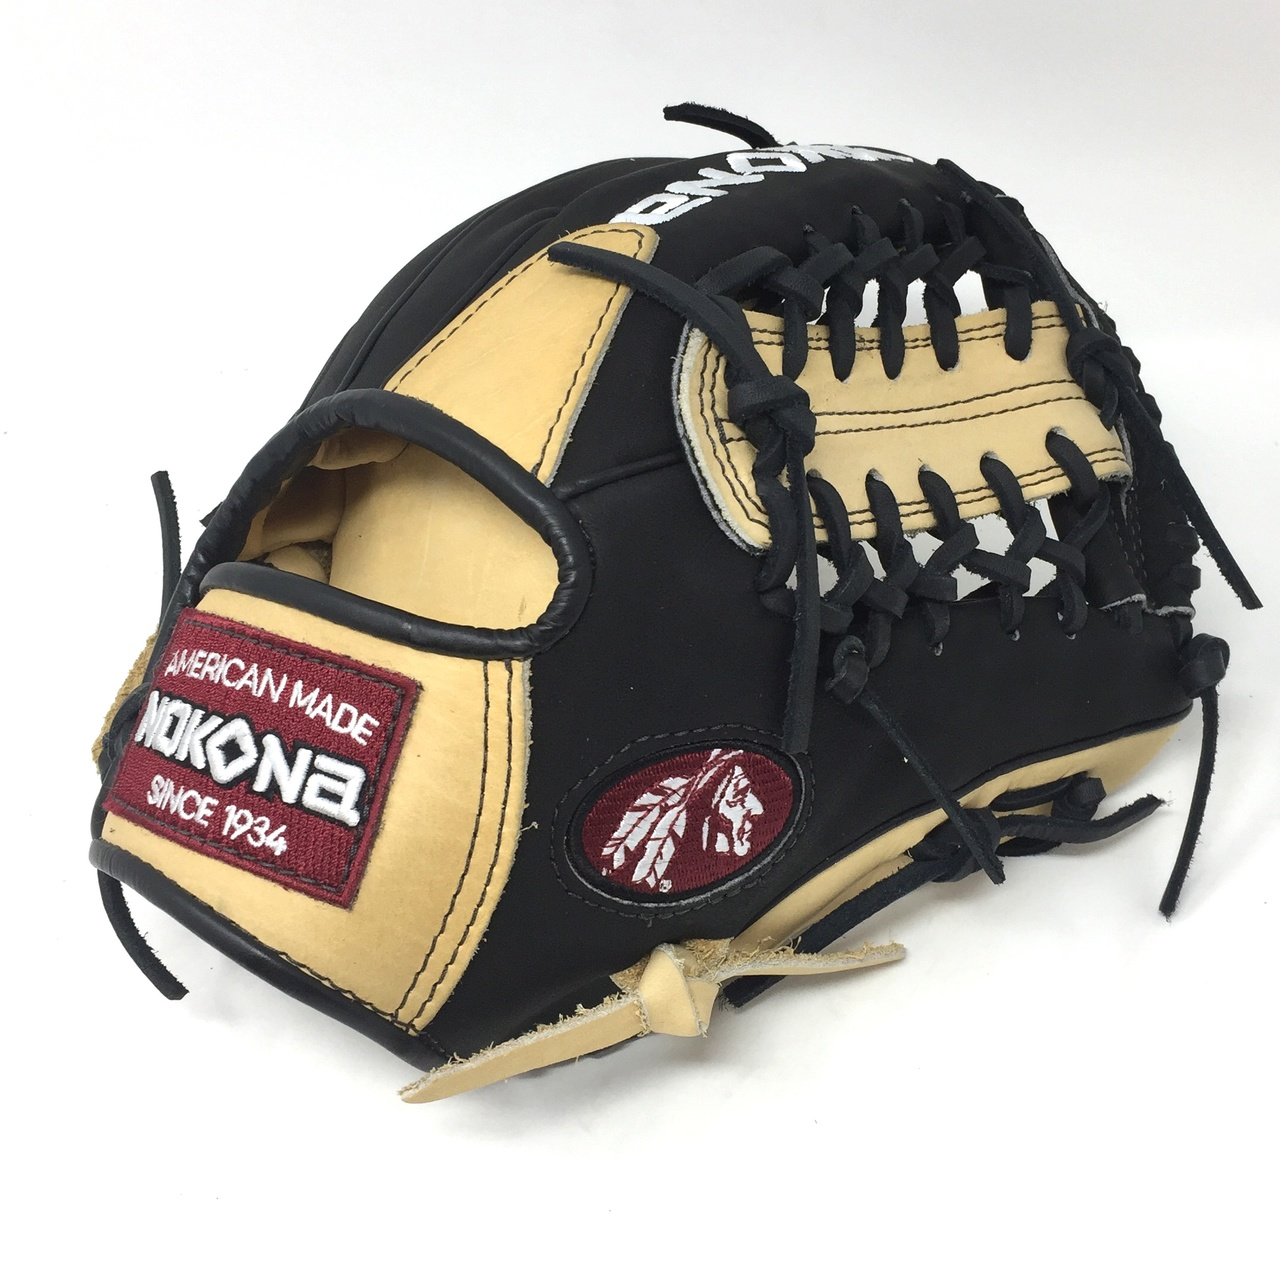 nokona-bison-black-alpha-baseball-glove-s-1150mtb-11-5-right-hand-throw S-1150MTB-RightHandThrow Nokona 808808893240 Young Adult Glove made of American Bison and Supersoft Steerhide leather